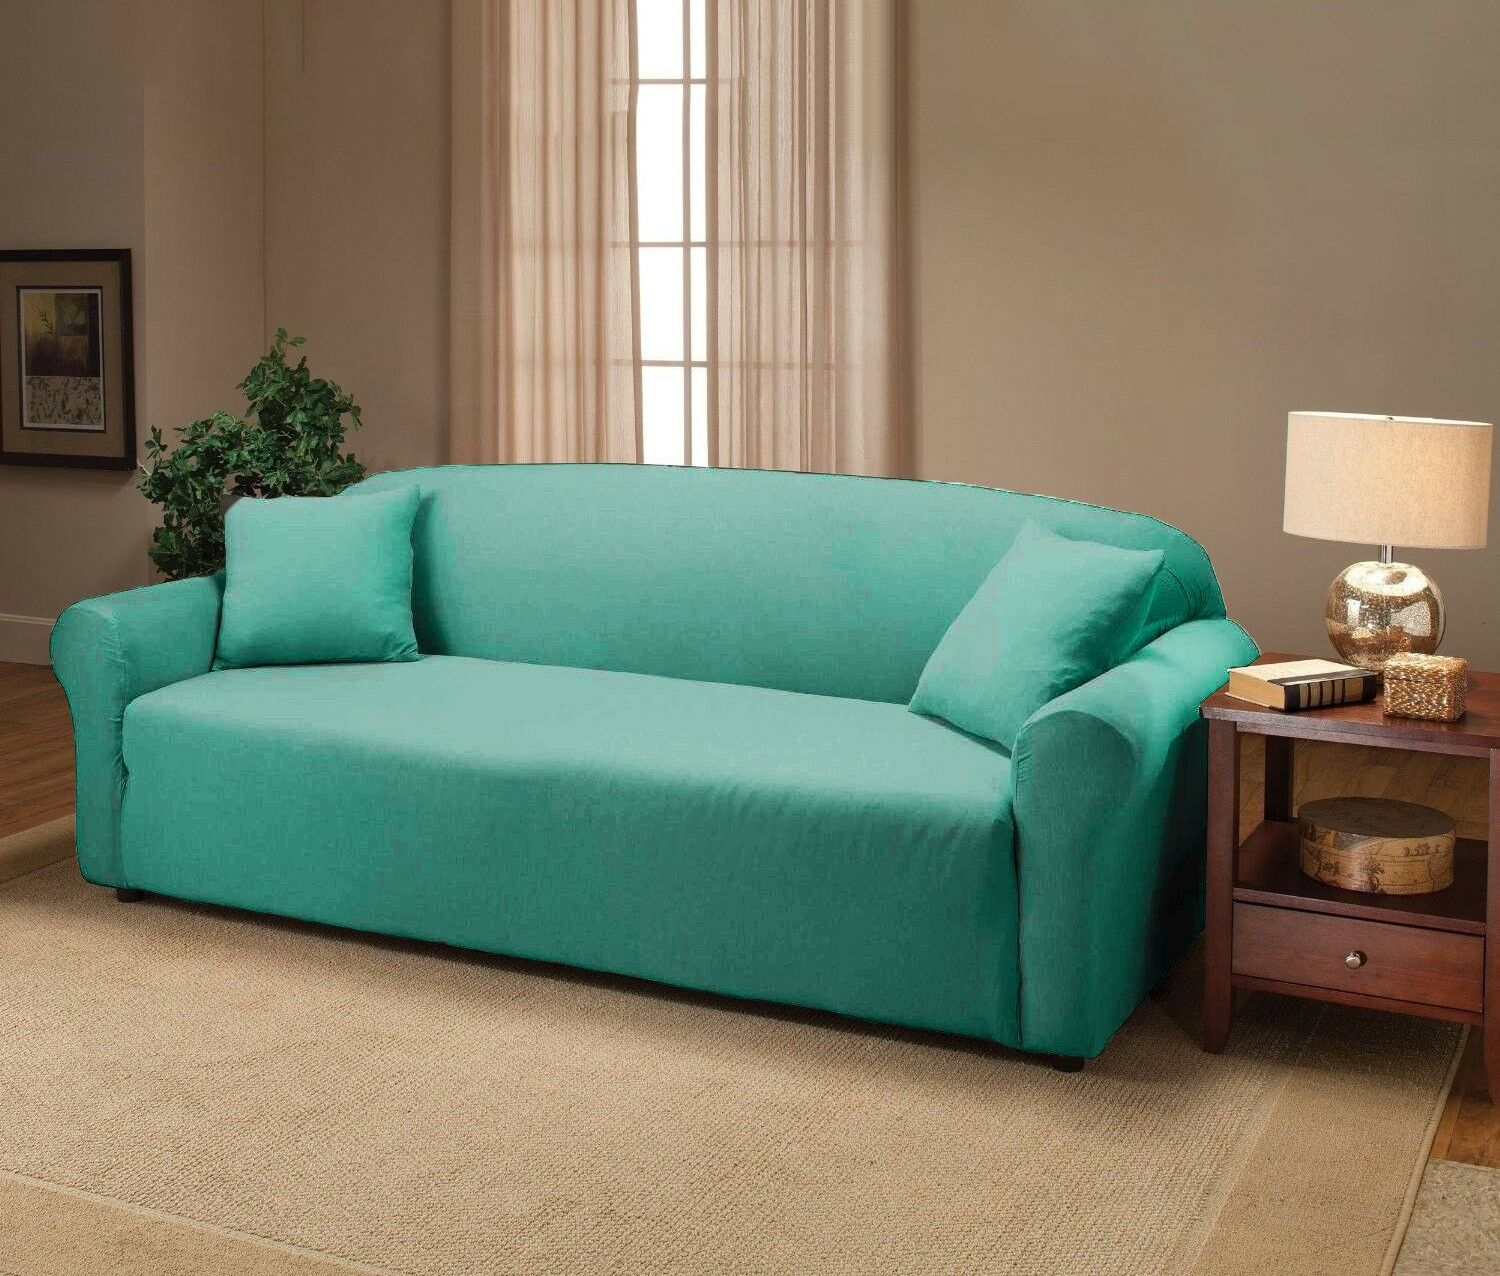 Sofa Slipcovers For Recliners Aqua Jersey Sofa Stretch Slipcover, Couch Cover, Chair